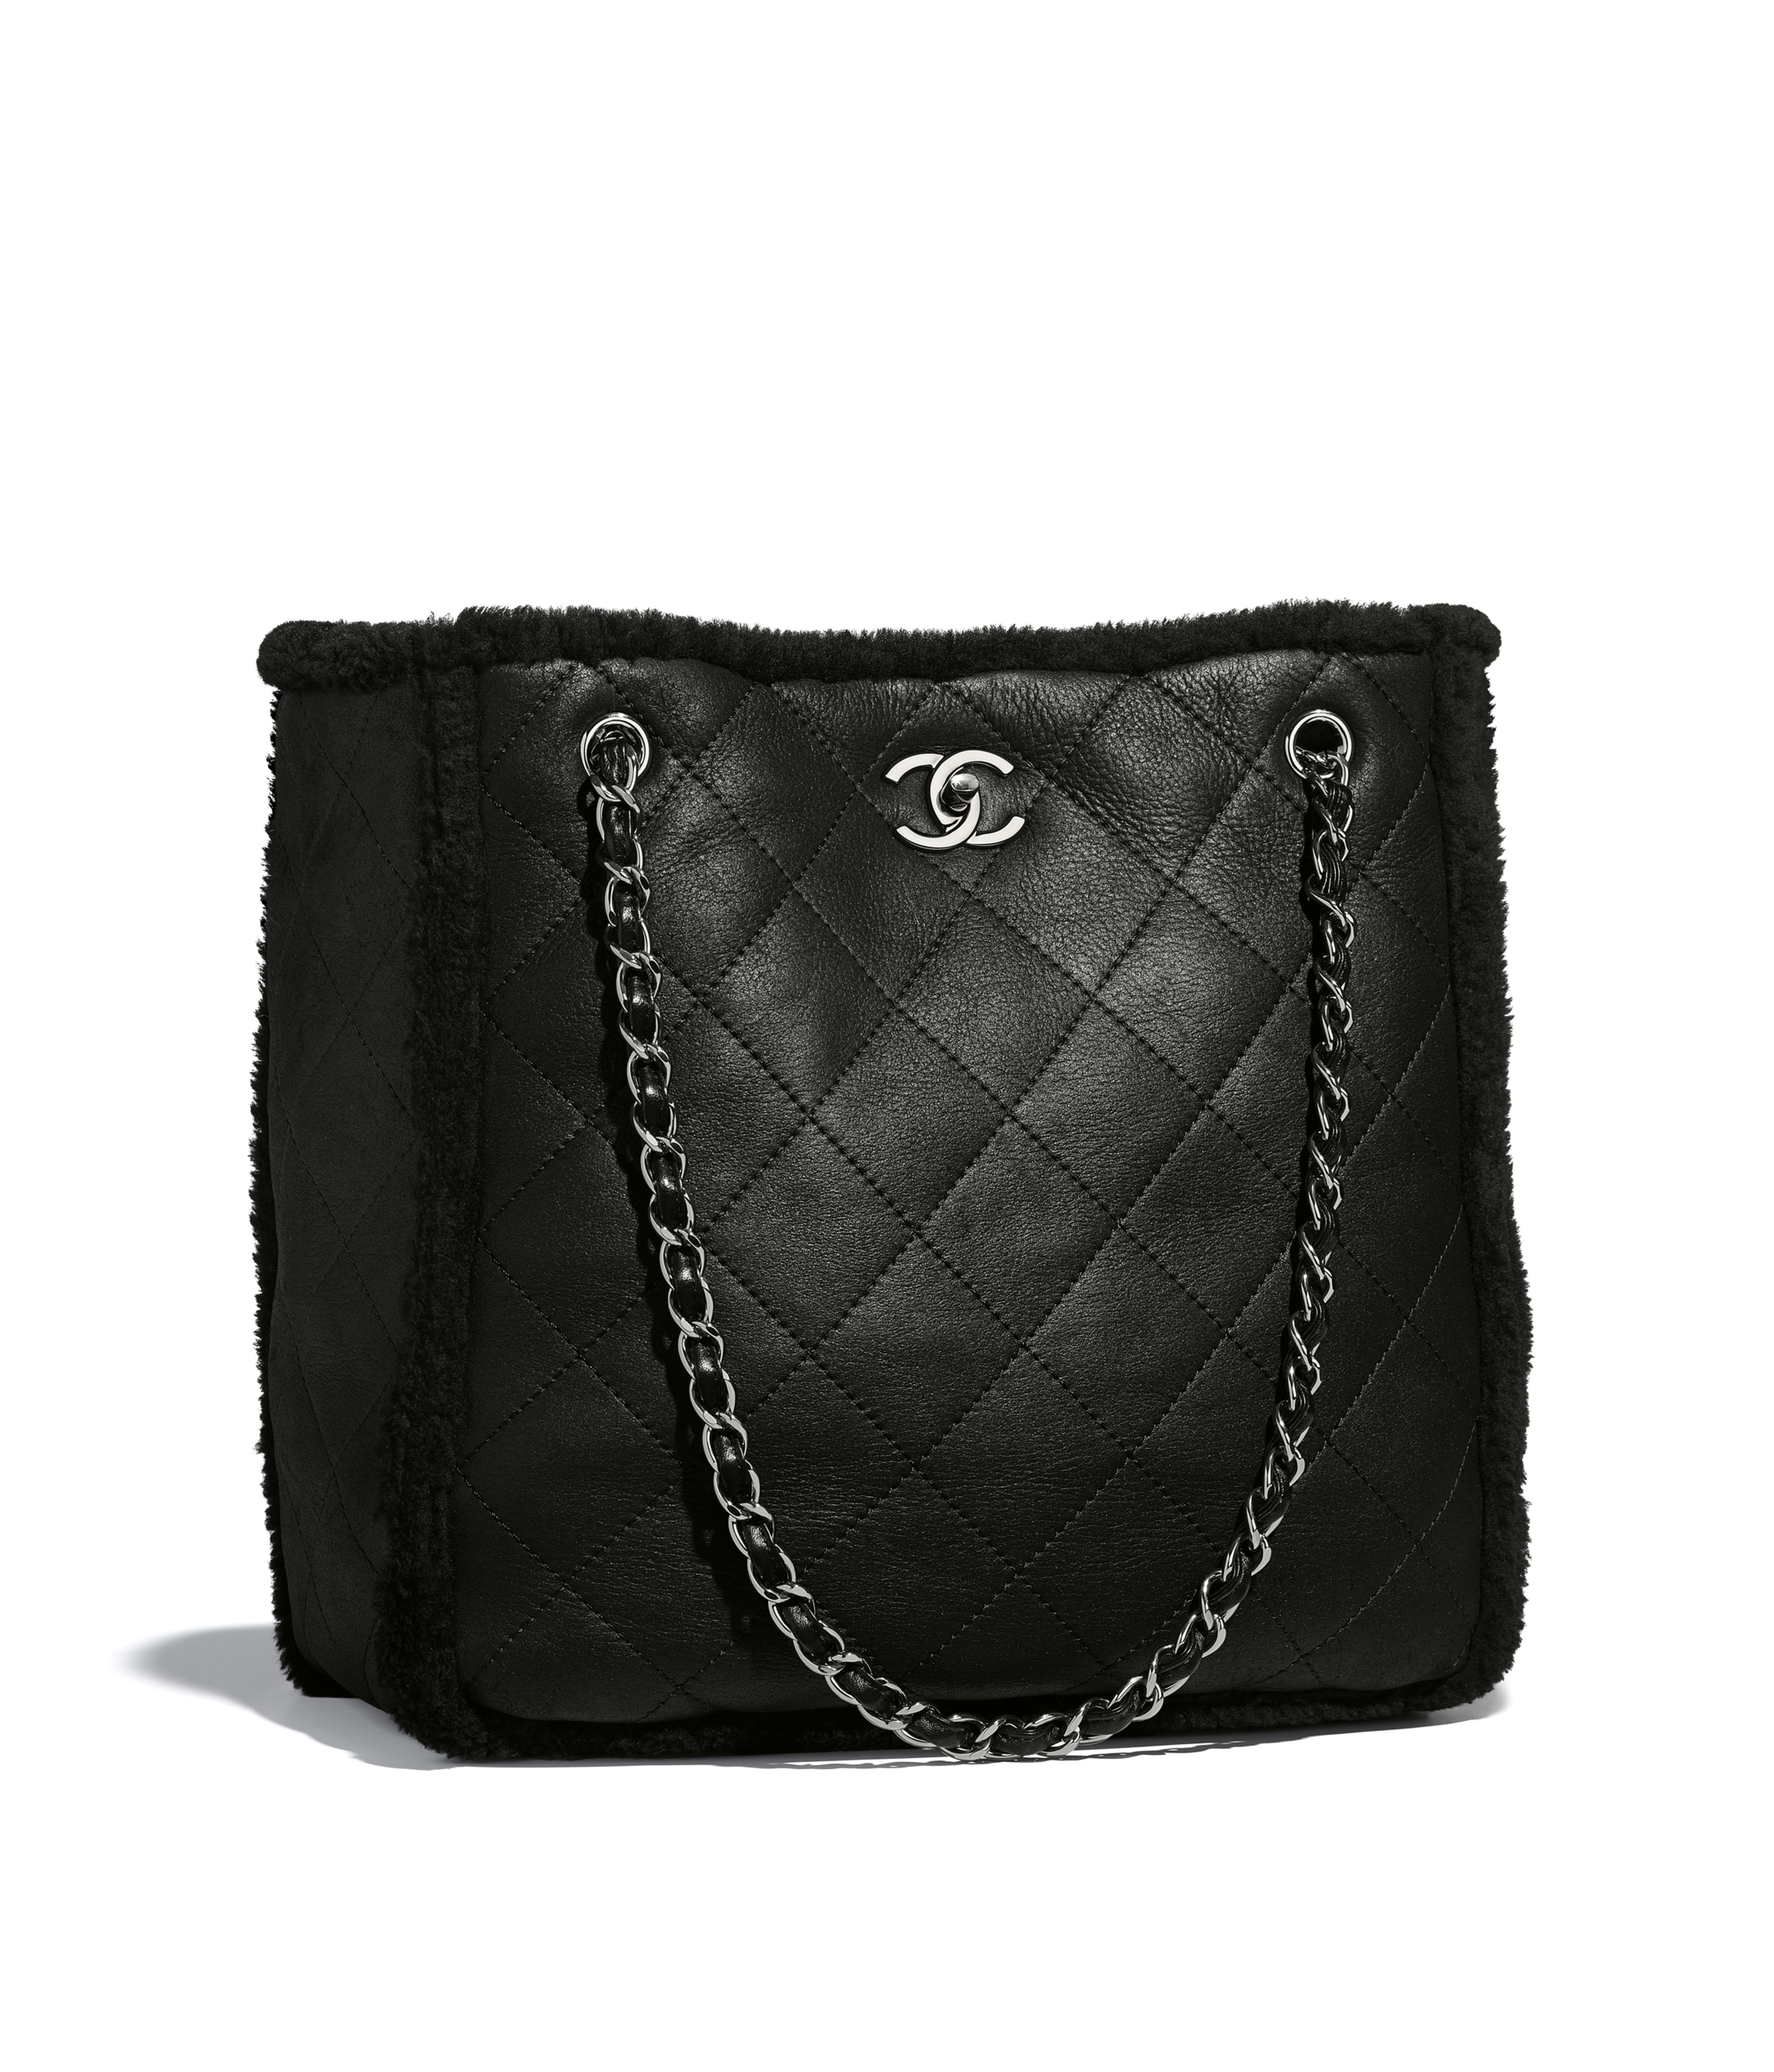 New This Season Handbags Chanel